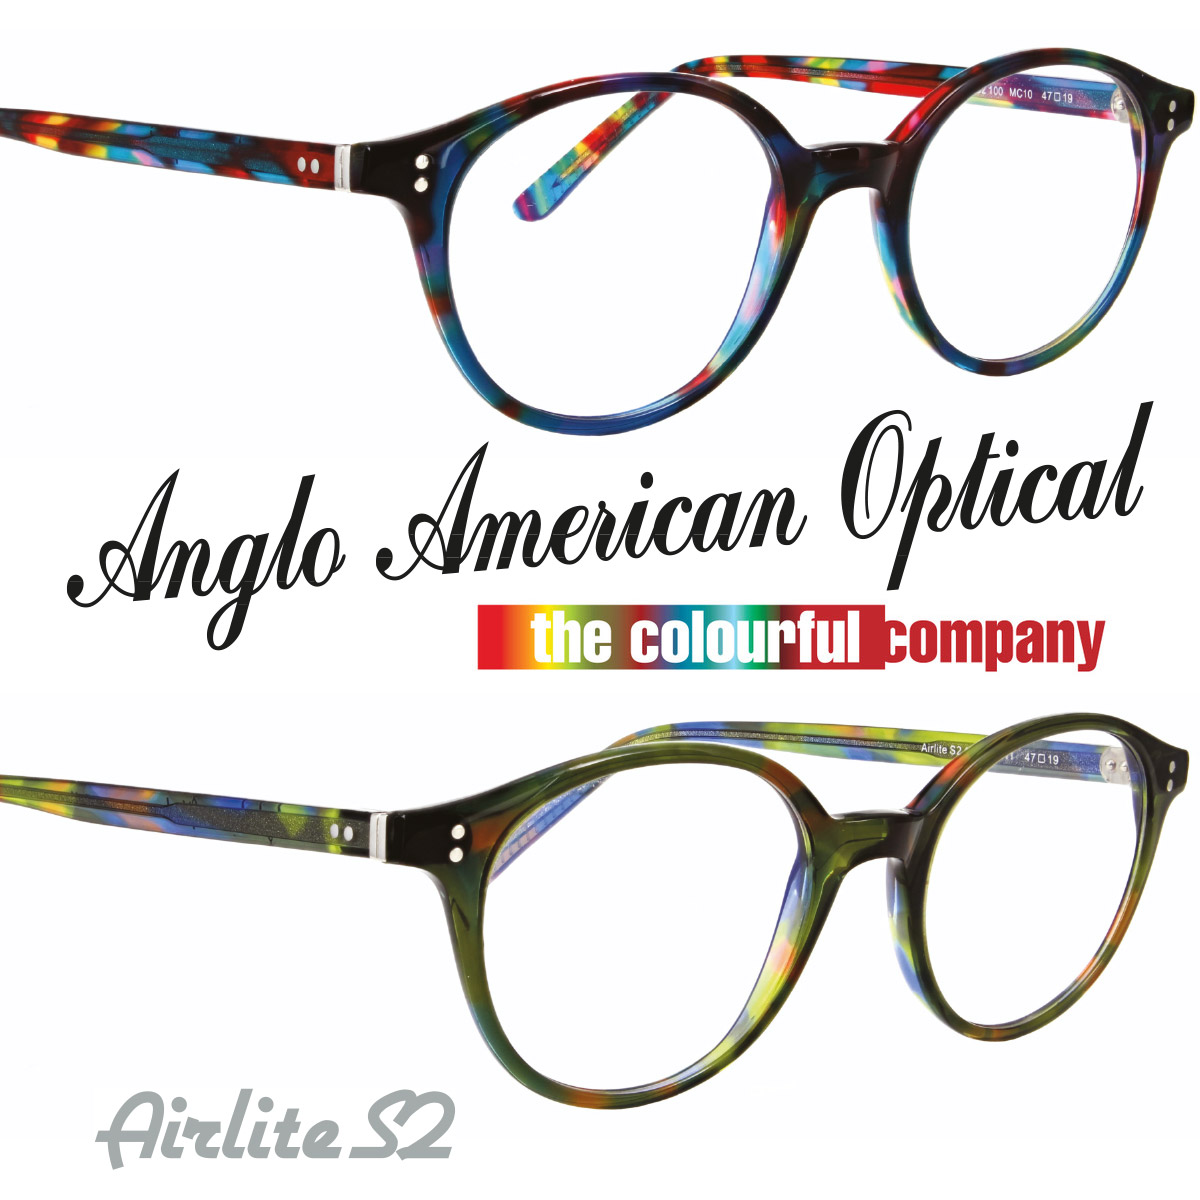 Anglo American Optical: the colourful company